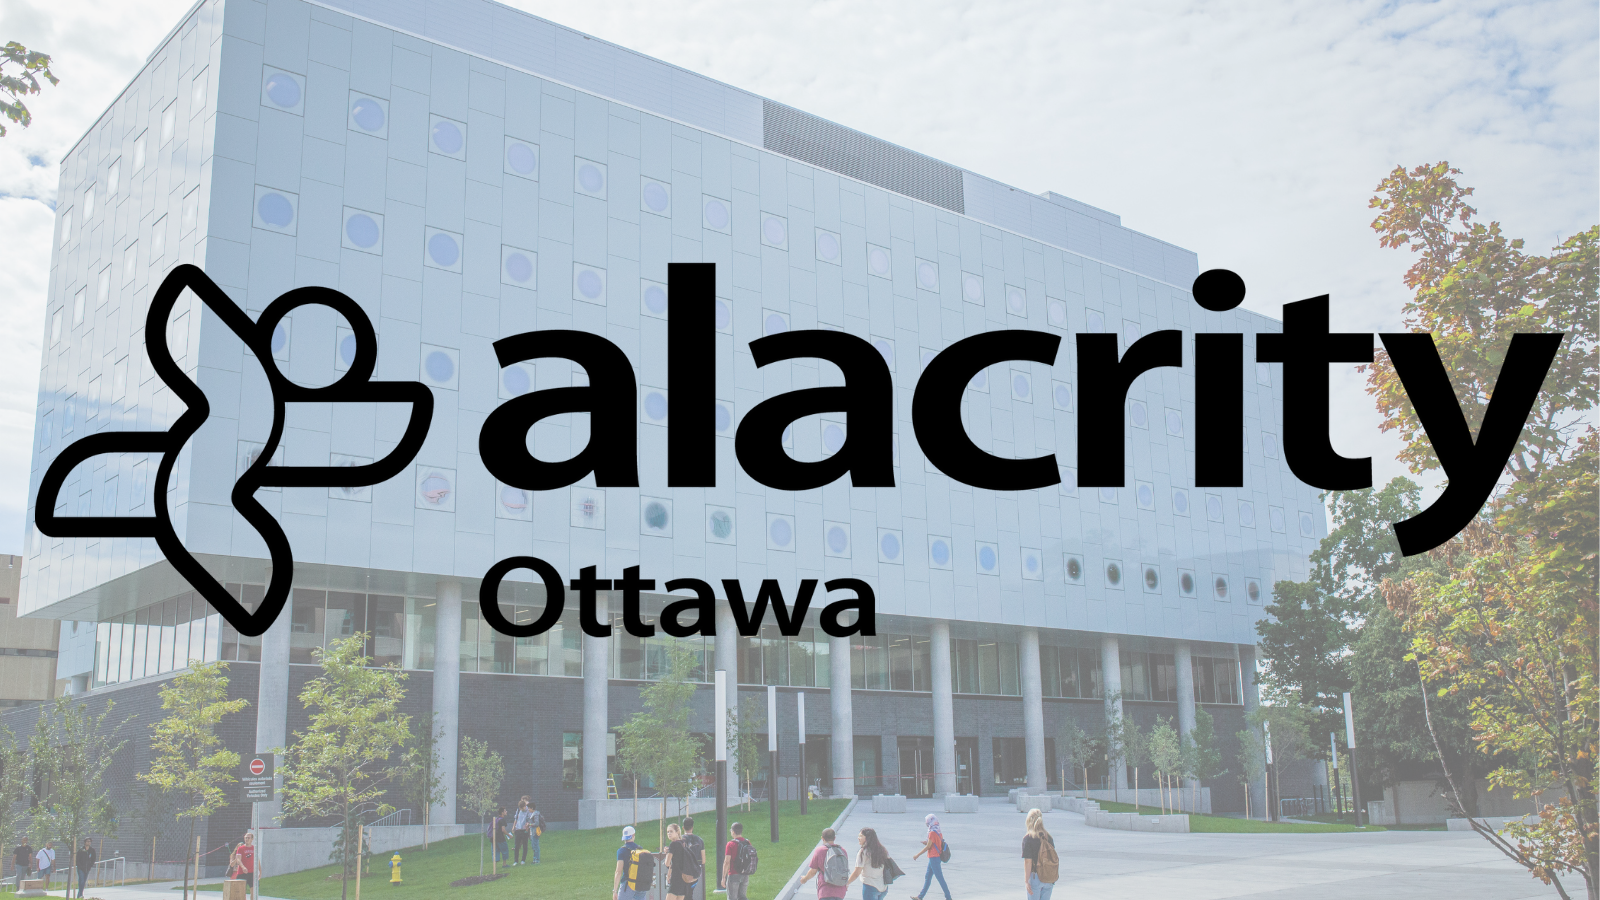 Alacrity Ottawa's logo on top of an image of the uOttawa STEM Complex building